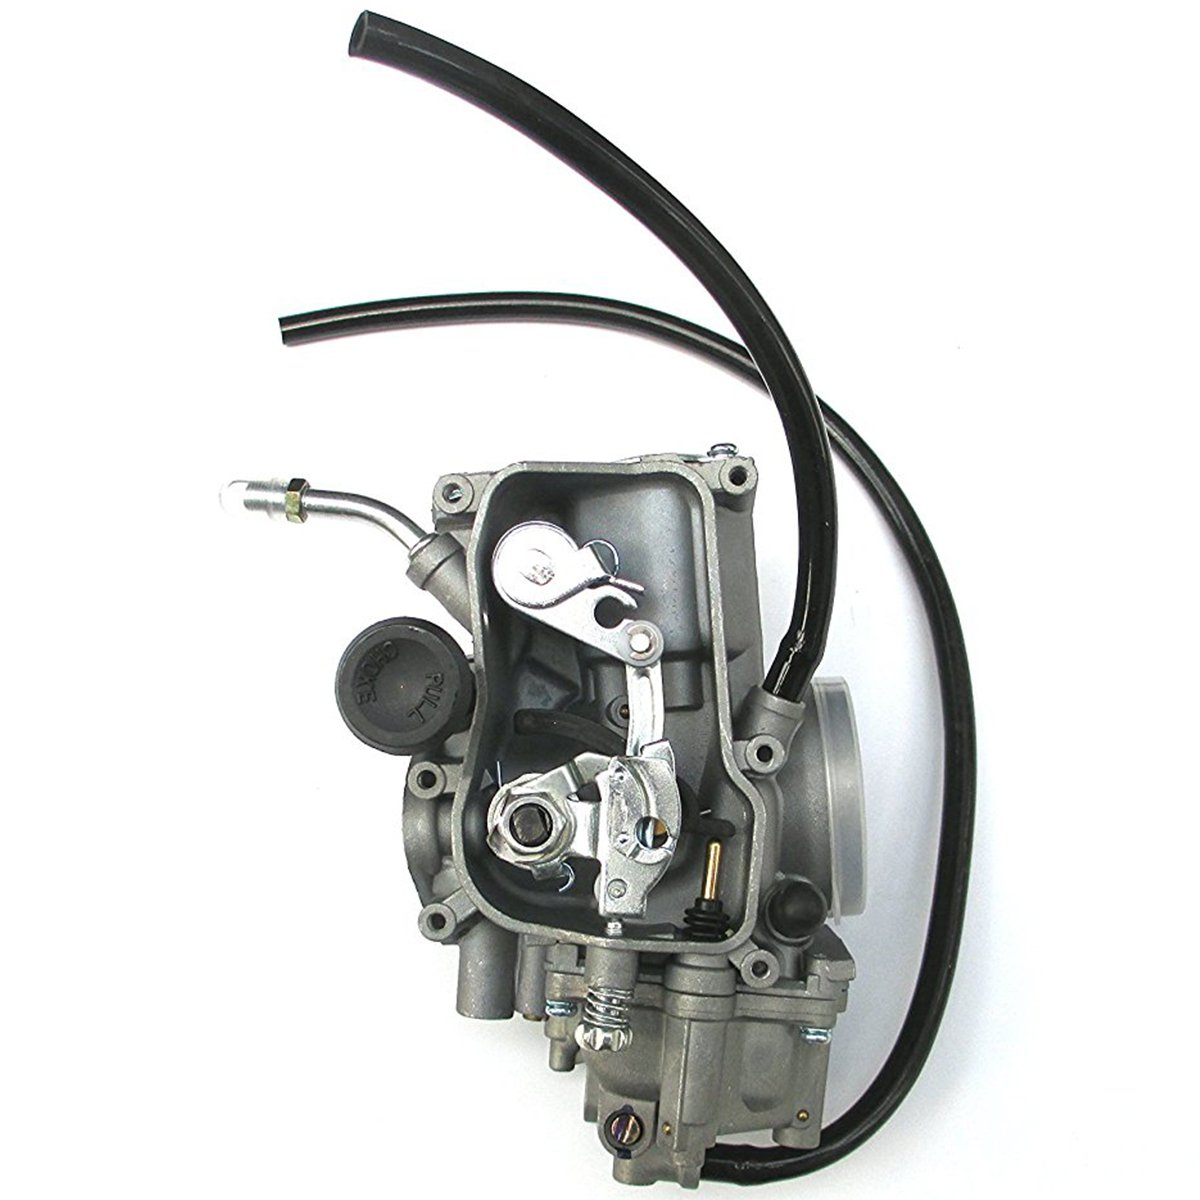 New Carburetor Fits Yamaha Kodiak 400 YFM 400 4x4 1993 1994 1995 Carb ATV YFM400 by Amhousejoy